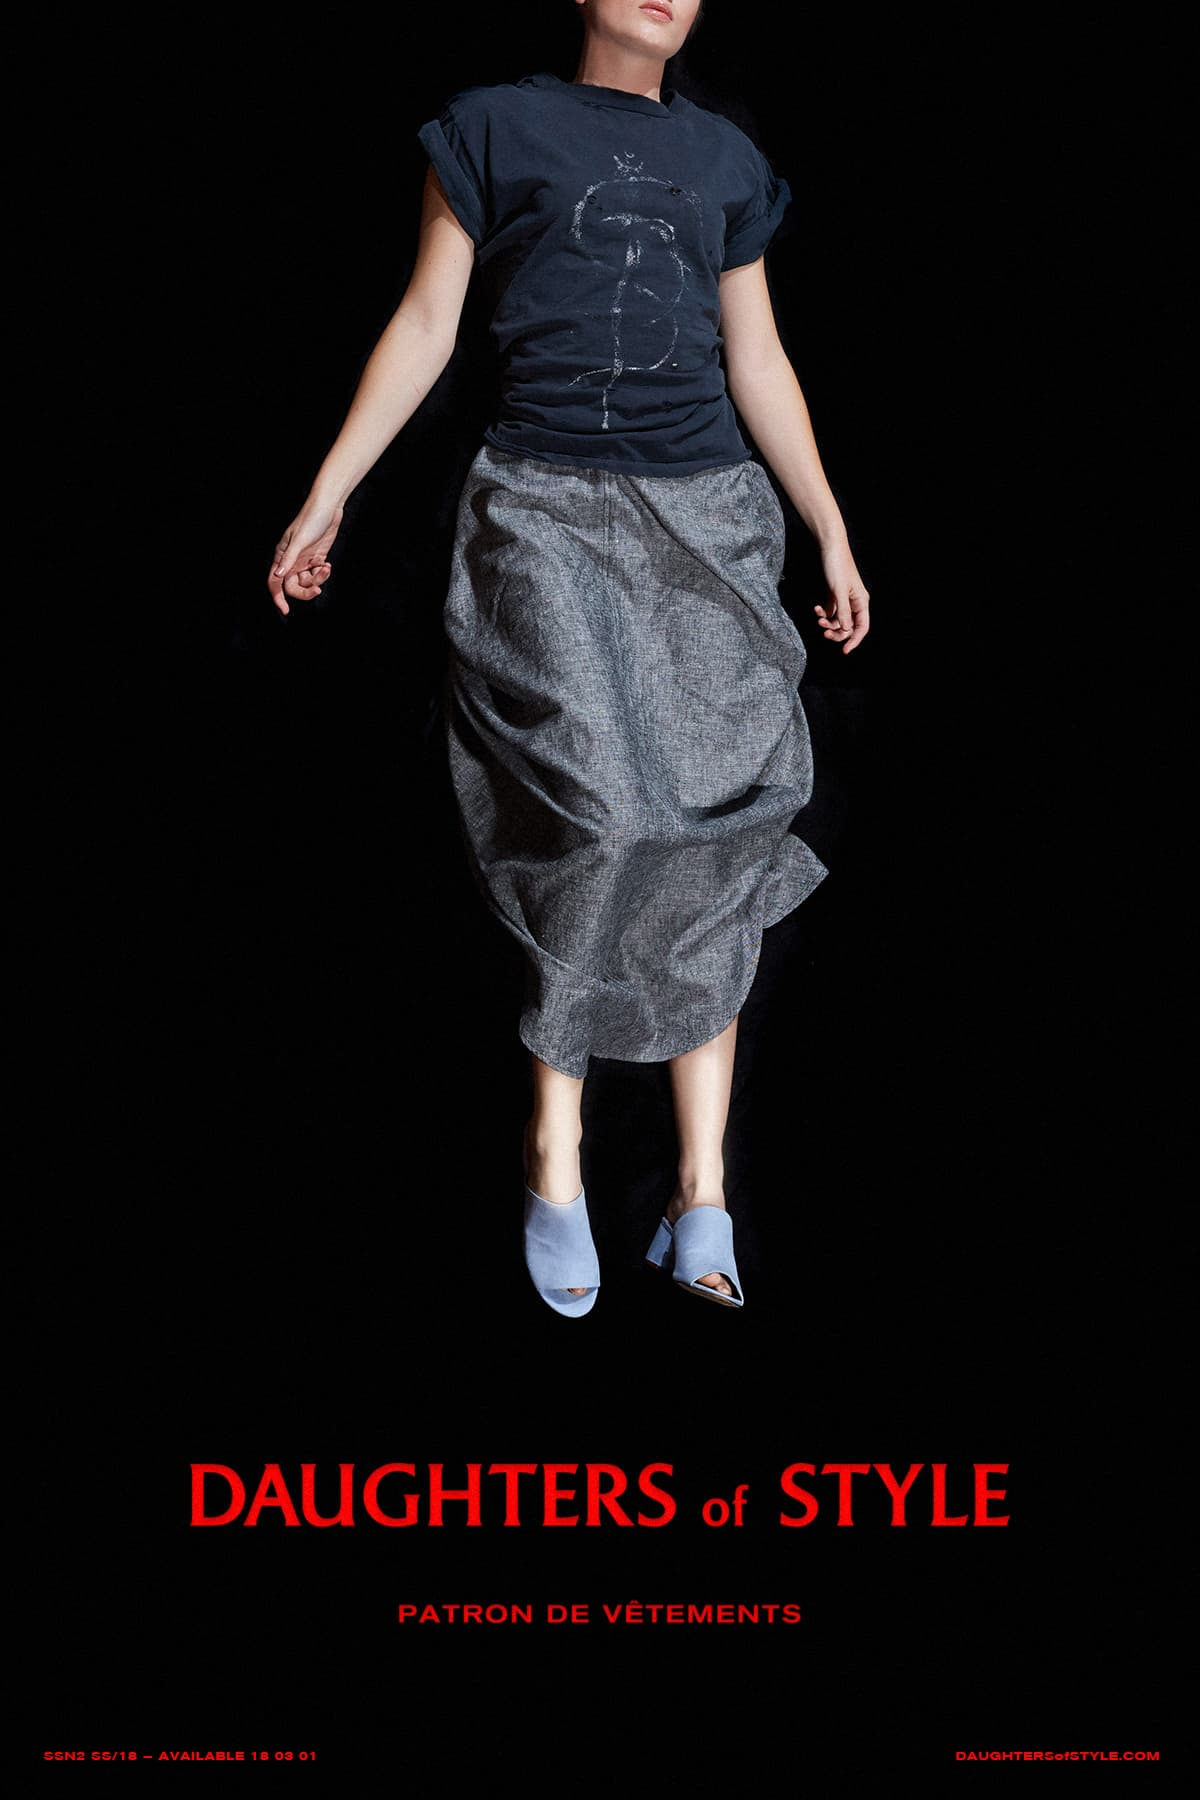 DAUGHTERS of STYLE